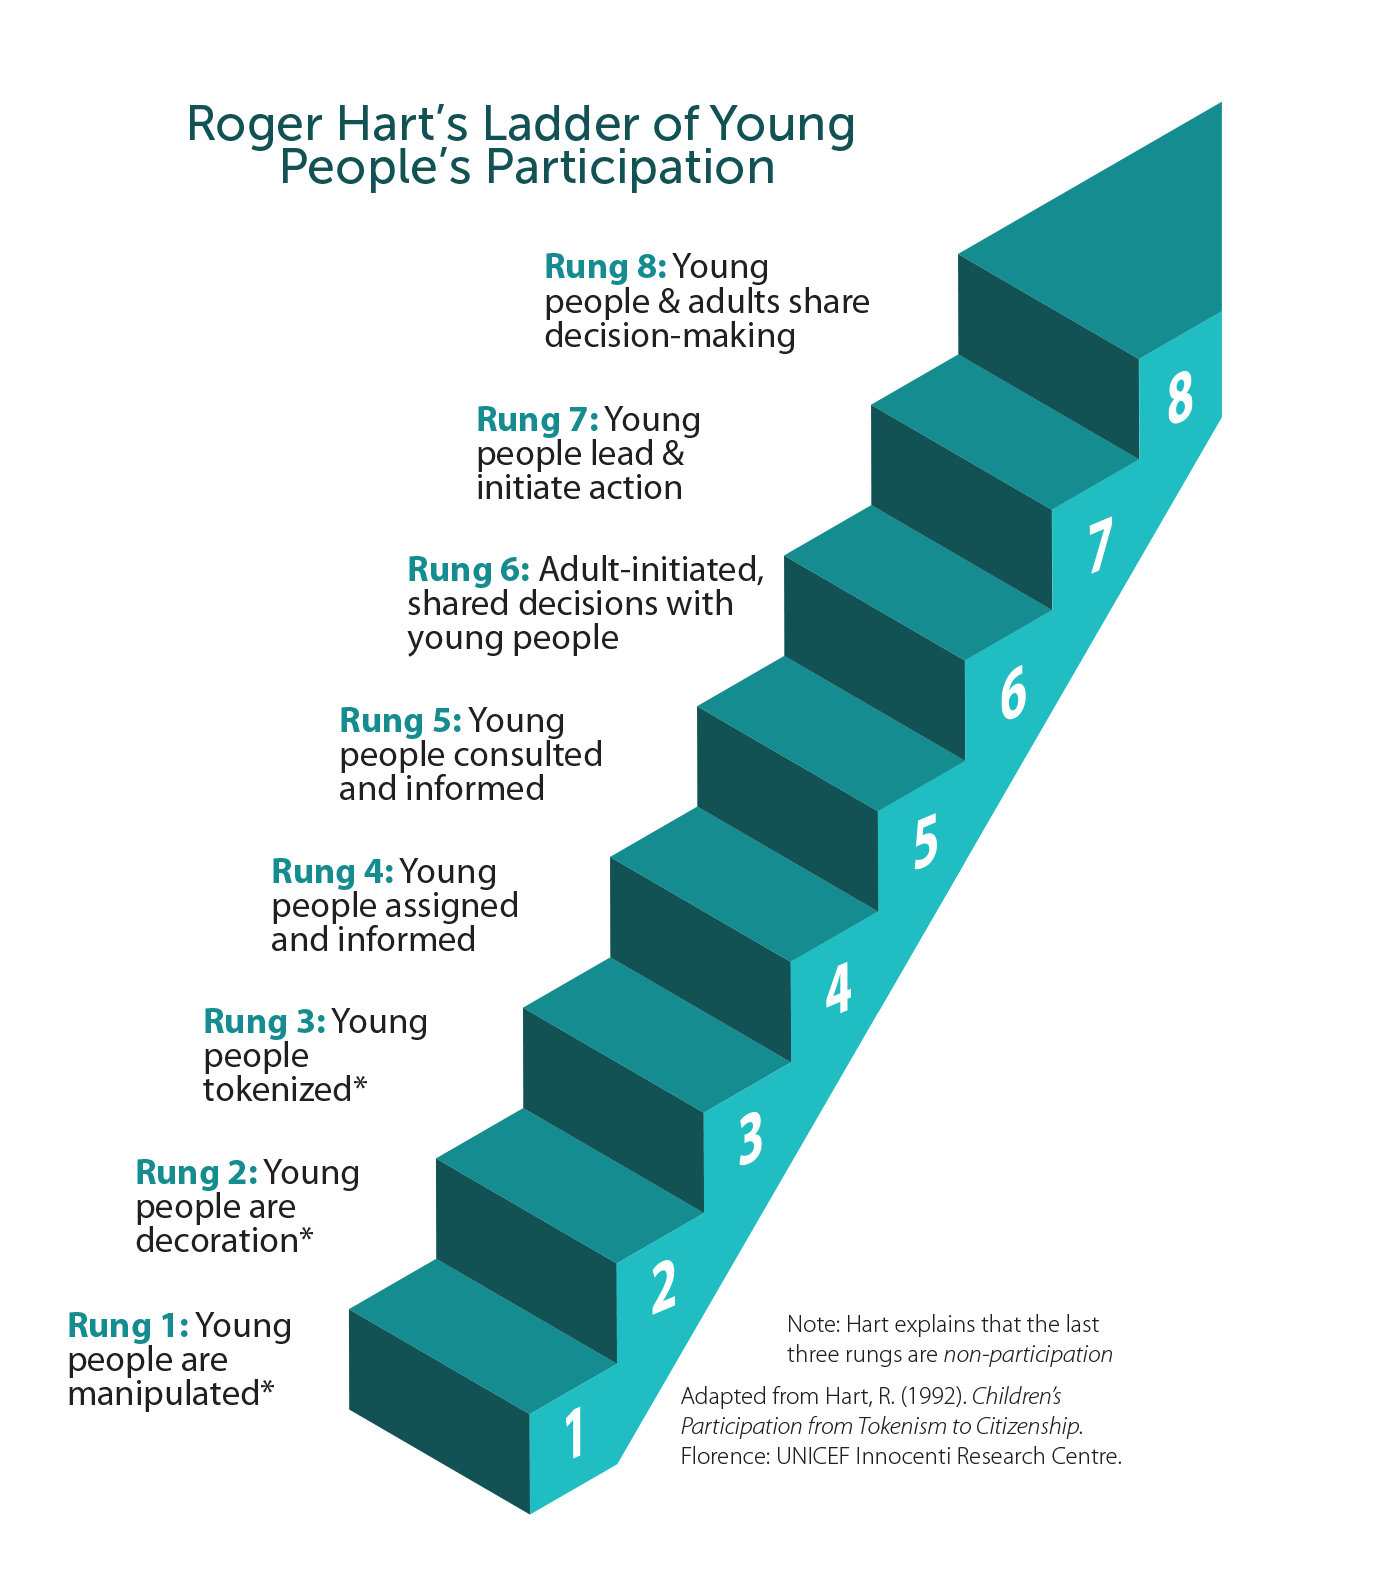 Roger Hart's Ladder of Young People's Participation. From the lowest rung (1) to the highest (8): Young people are (1) manipulated, (2) decoration, (3) tokenized, (4) assigned & informed, (5) consulted & informed. (6) Adult-initiated, shared decisions with young people. (7) Young people lead & initiated action. (8) Young people & adults share decision-making.